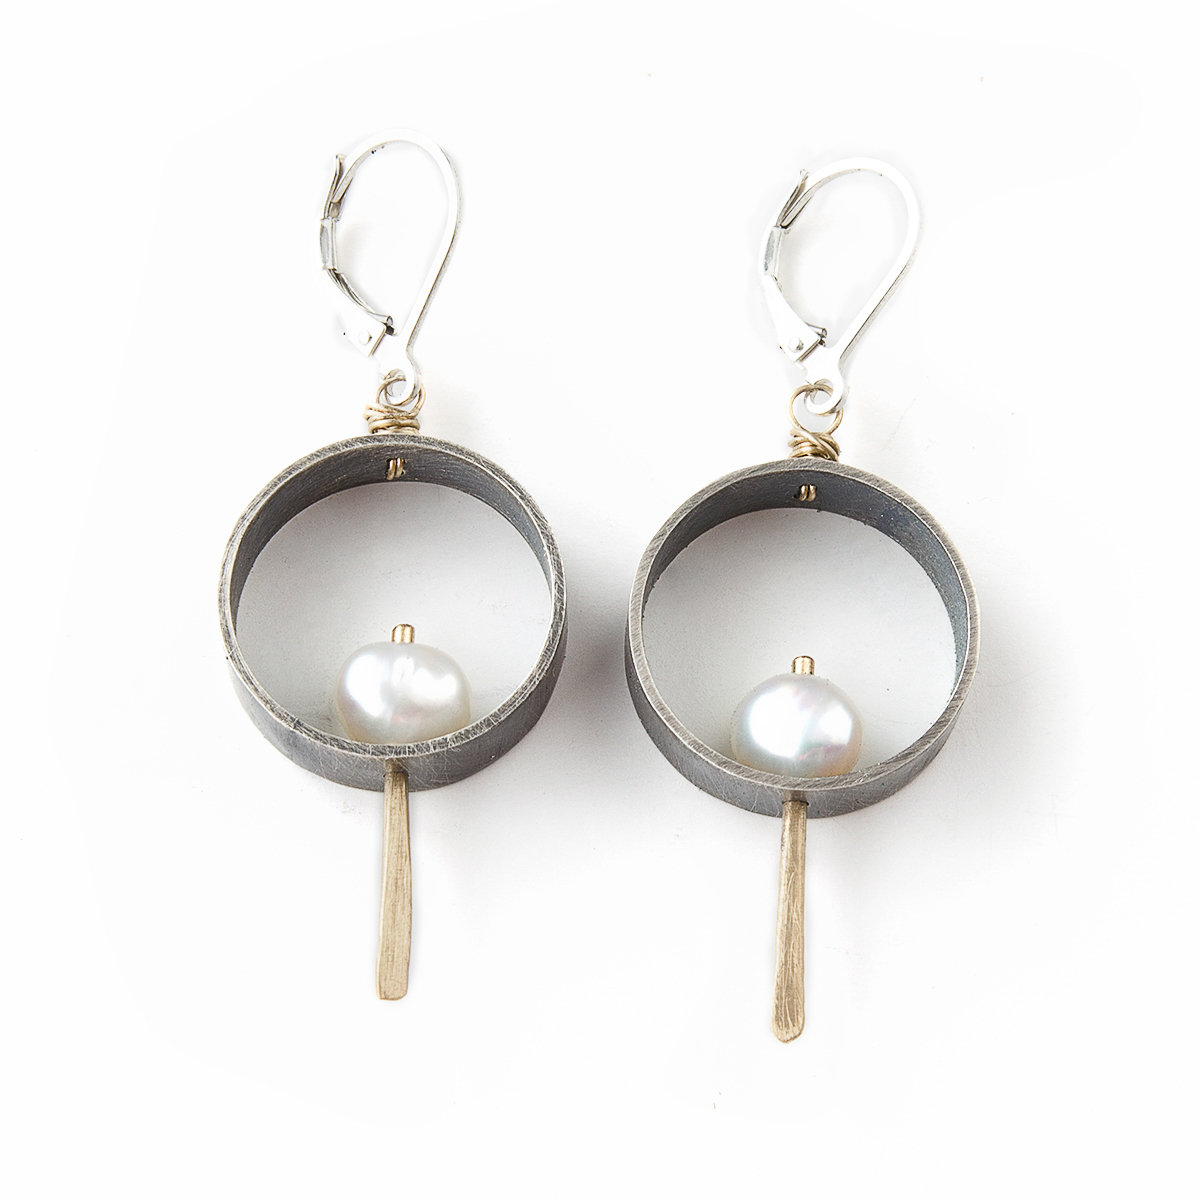 0d5077bb3 Juliet Circle Earrings with 18K Gold and Pearls by Jackie Jordan (Gold,  Silver & Pearl Earrings) | Artful Home